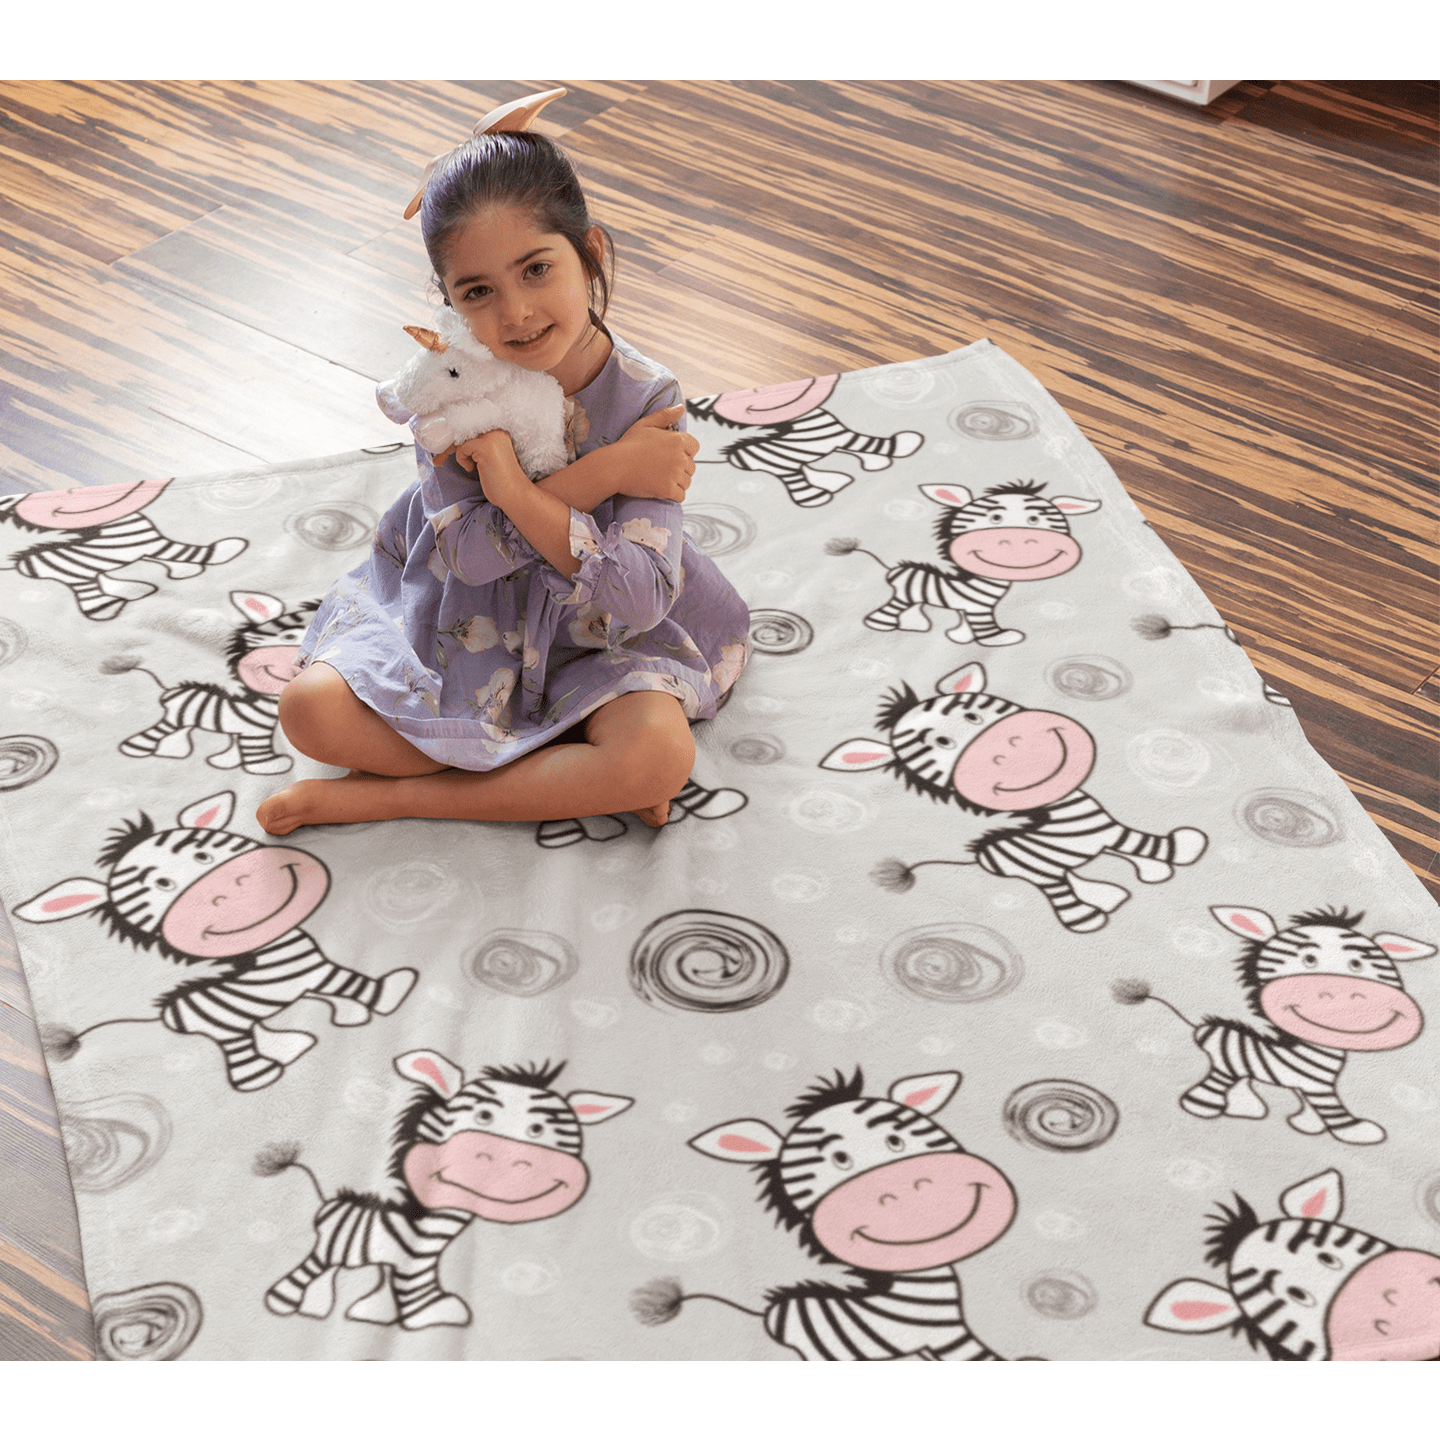 Cute Zebra Squiffy Minky Blanket-Cute Zebra-Little Squiffy